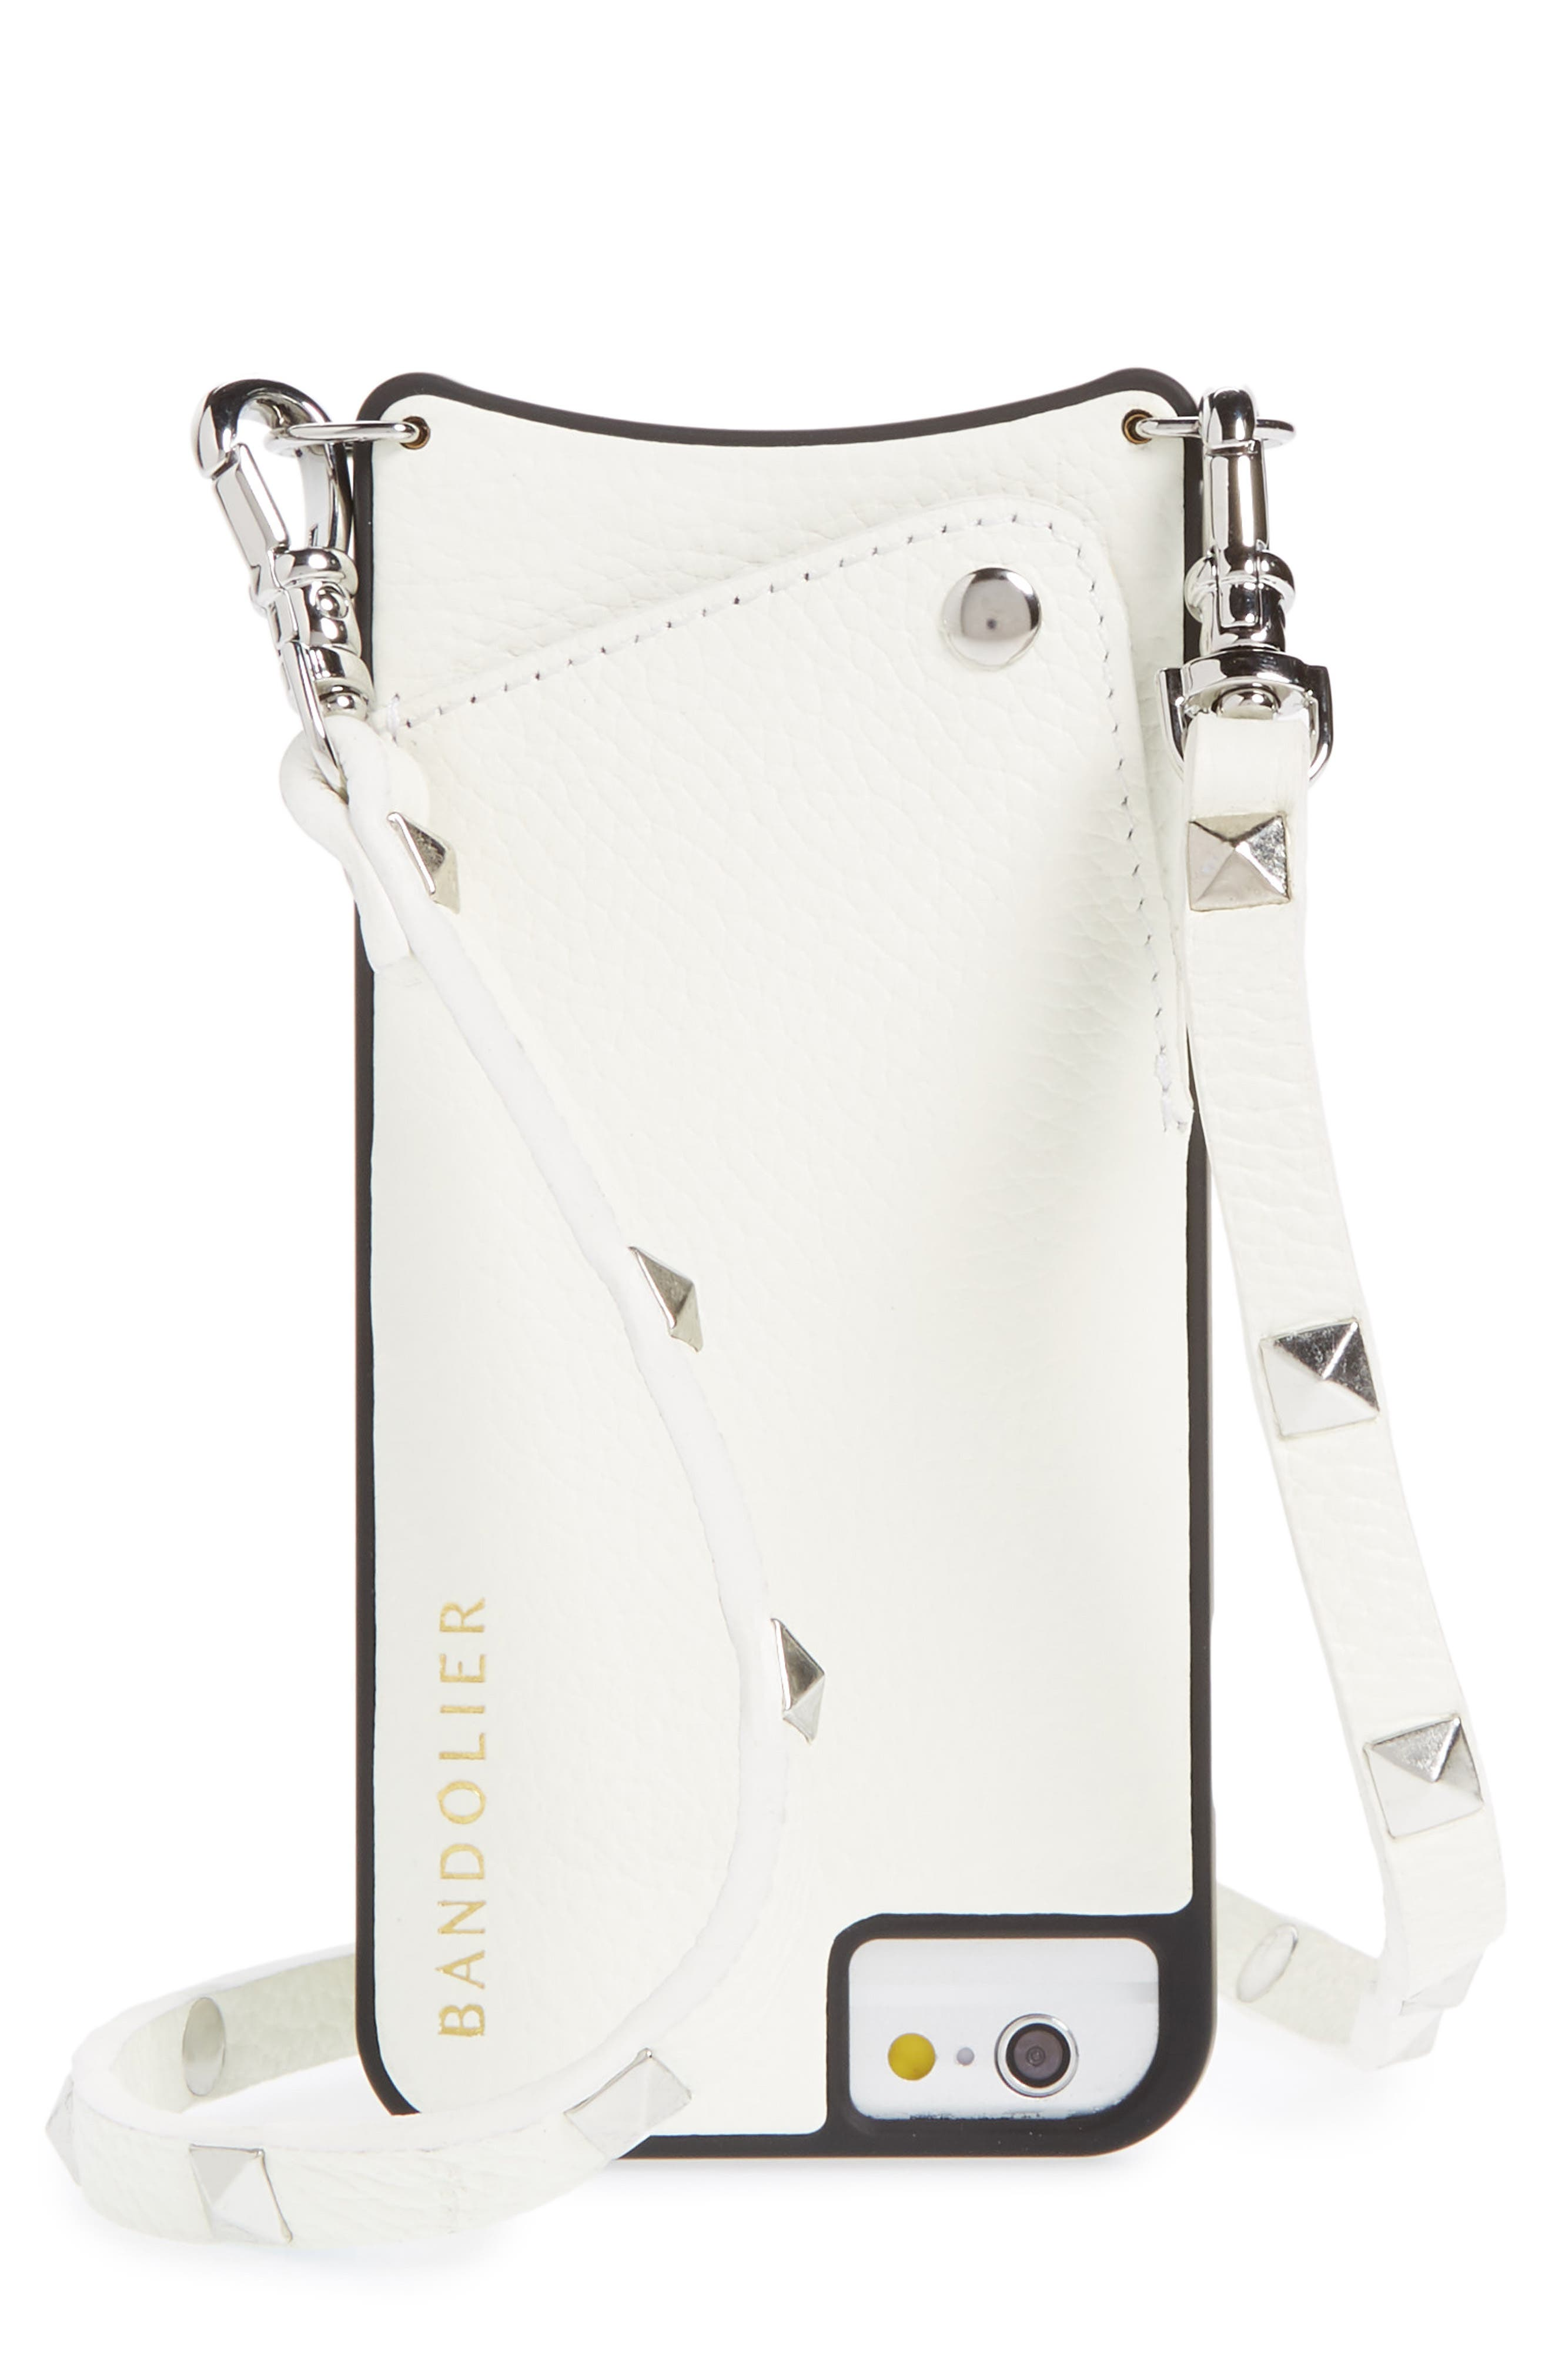 Sarah Leather iPhone 6/7/8 & 6/7/8 Plus Crossbody Case,                             Main thumbnail 1, color,                             White/ Silver